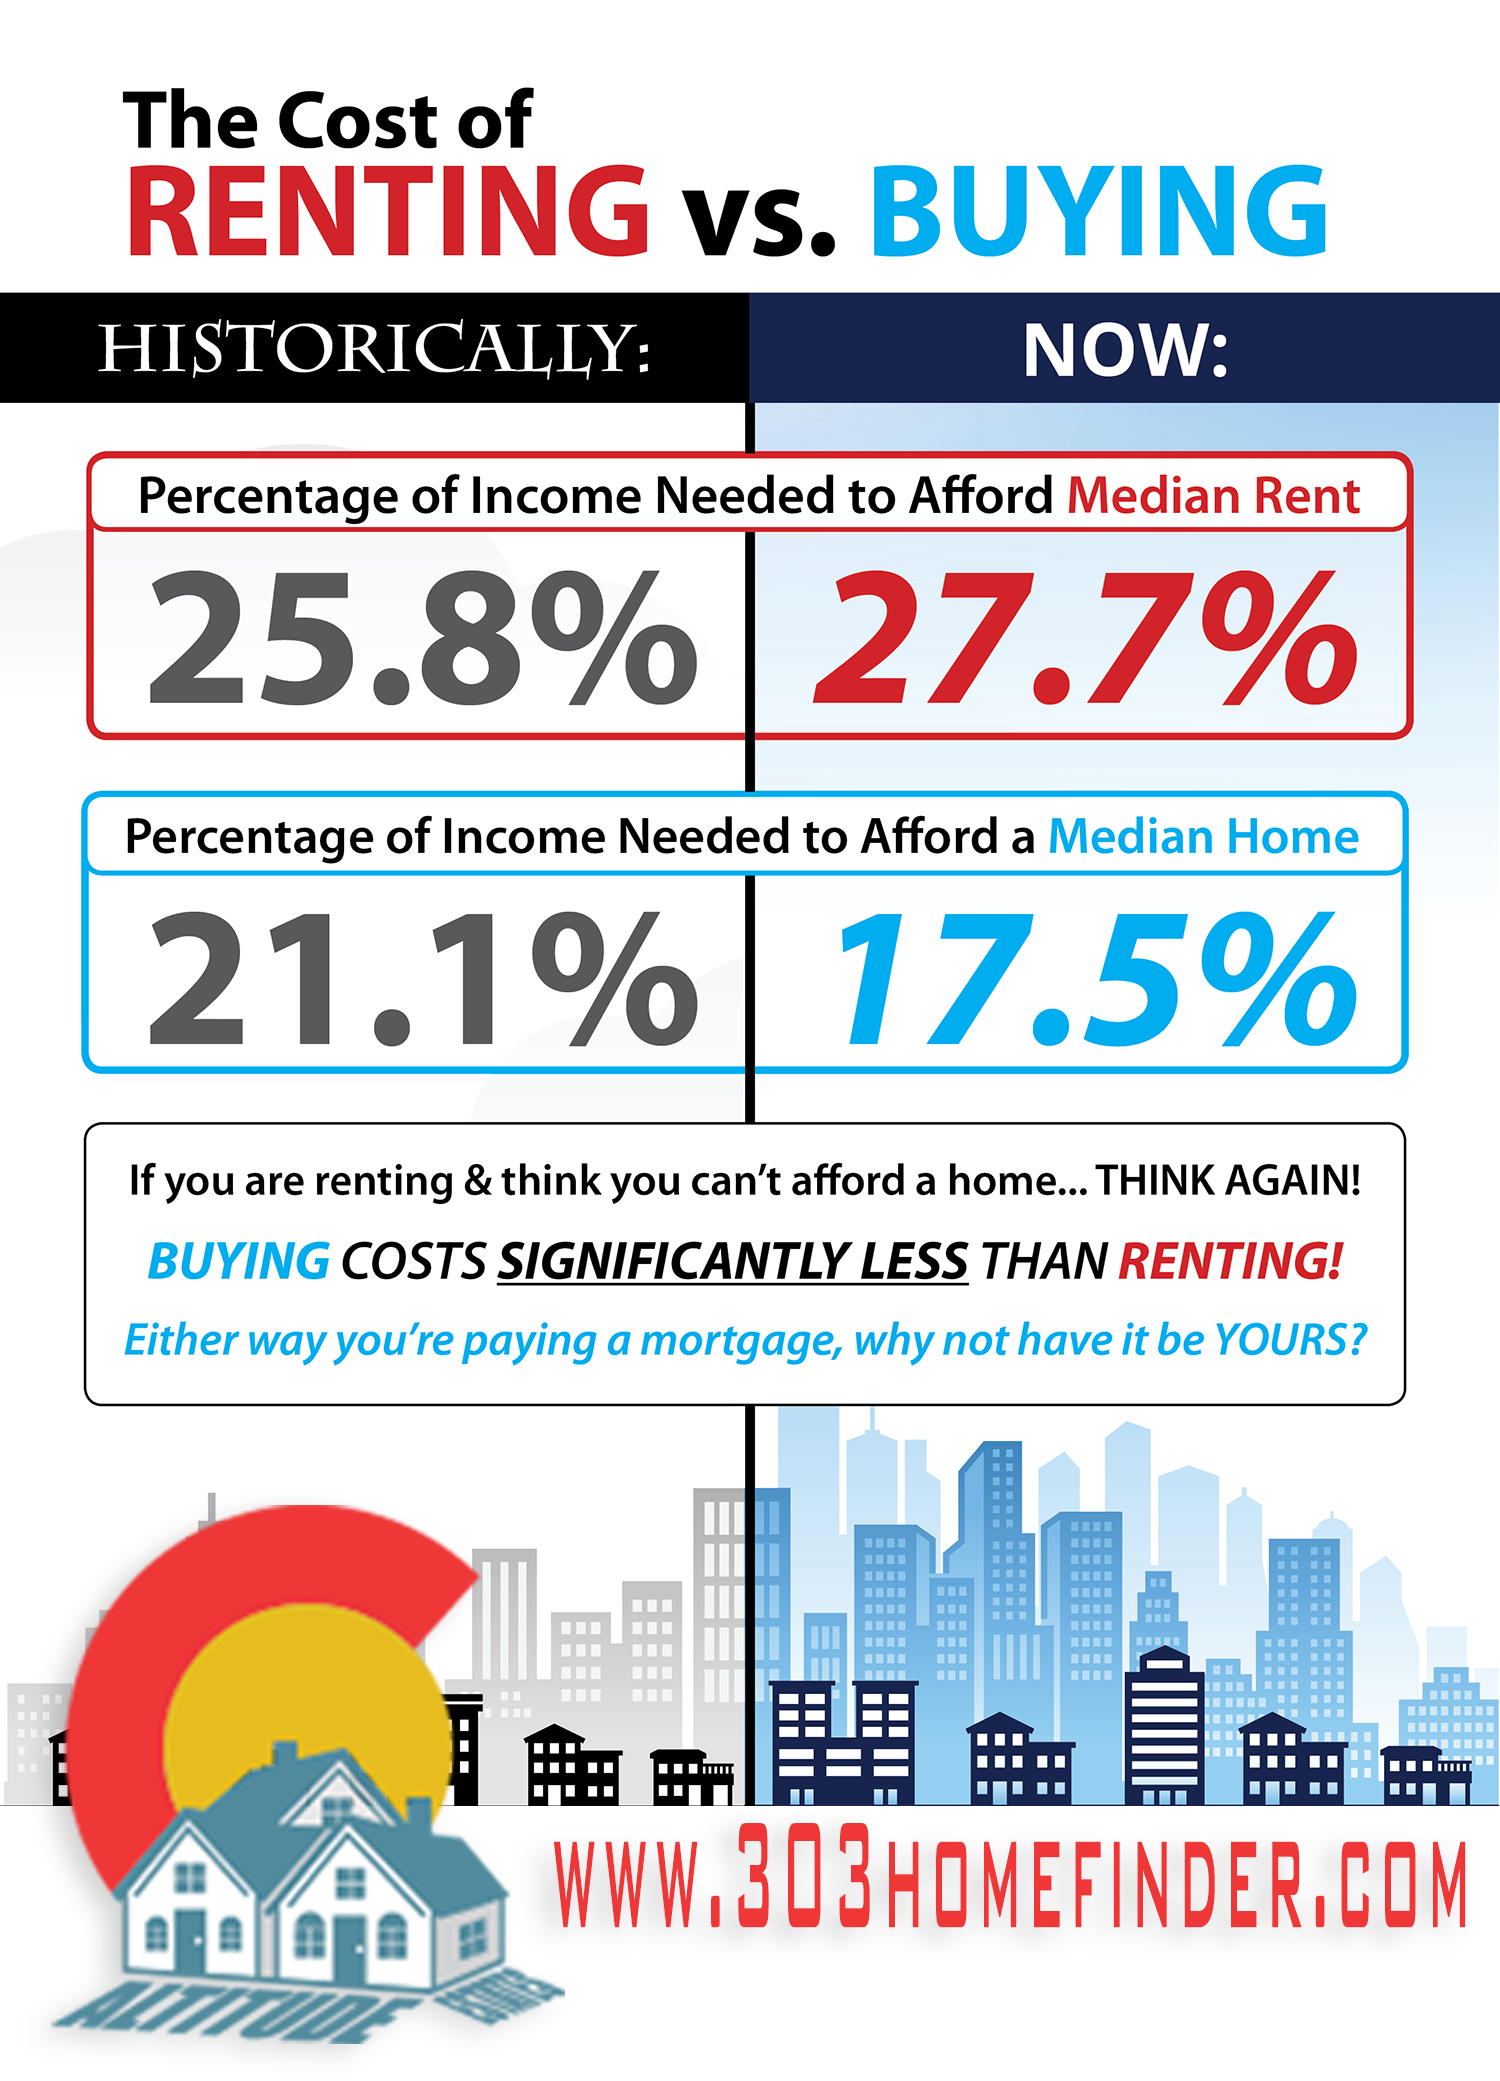 The cost of renting vs owning